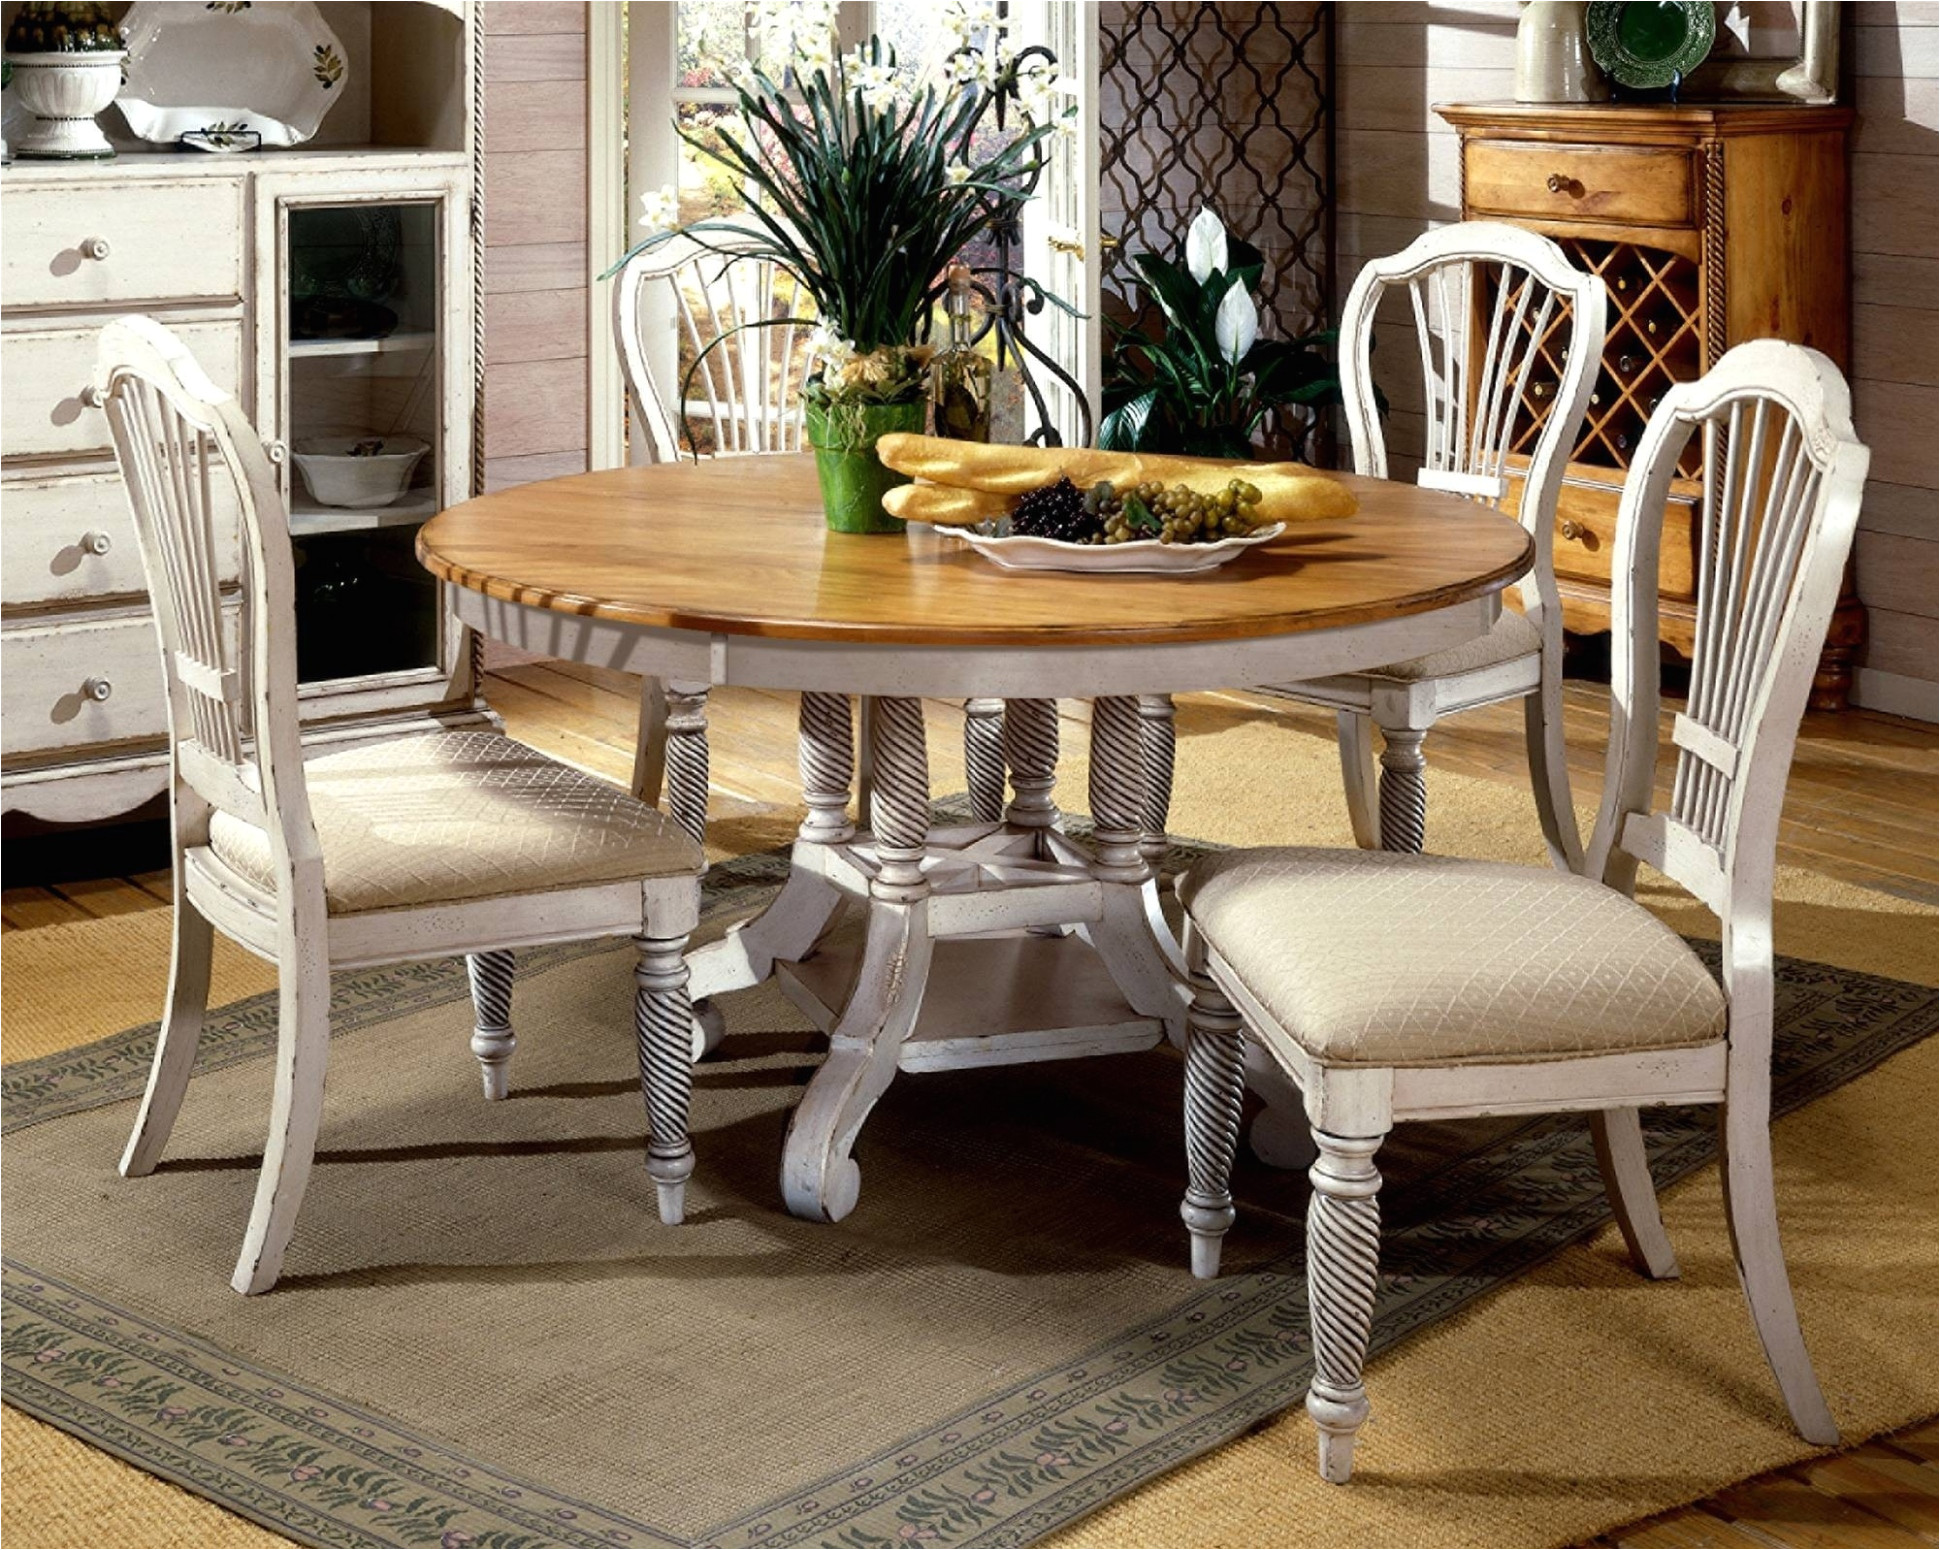 dining room chairs wood inspirational round wooden kitchen table and chairs beautiful coffee table dining